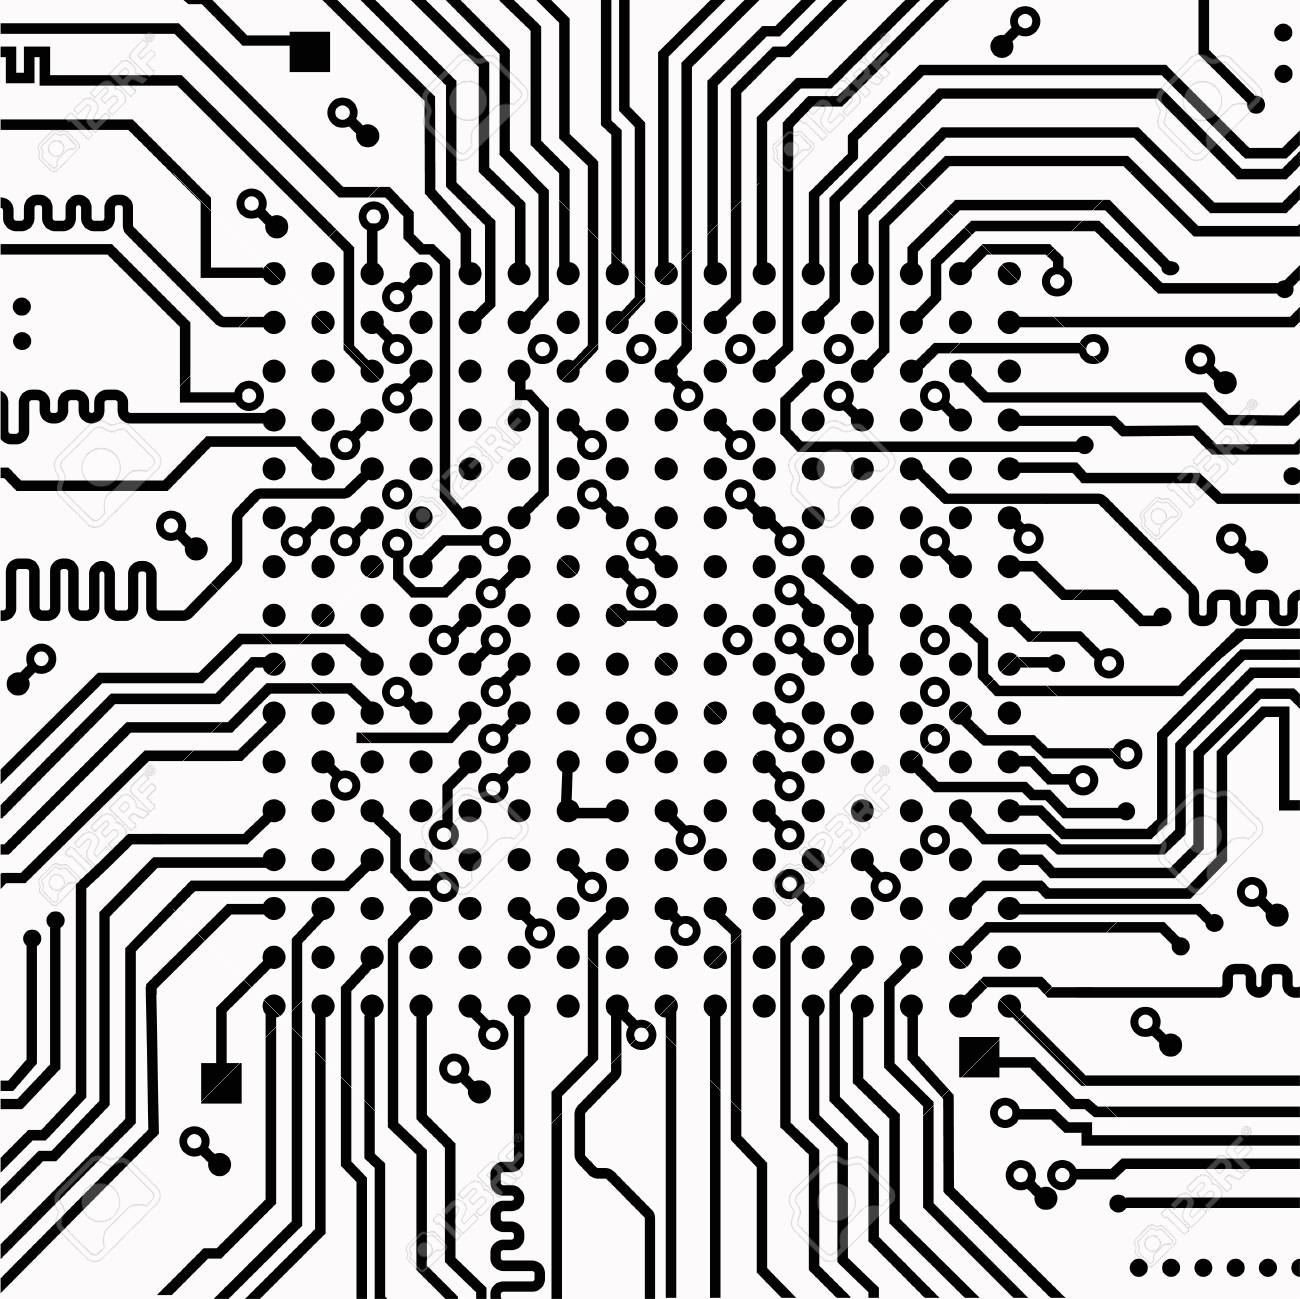 hight resolution of high tech electronic circuit board vector background stock vector 99199245